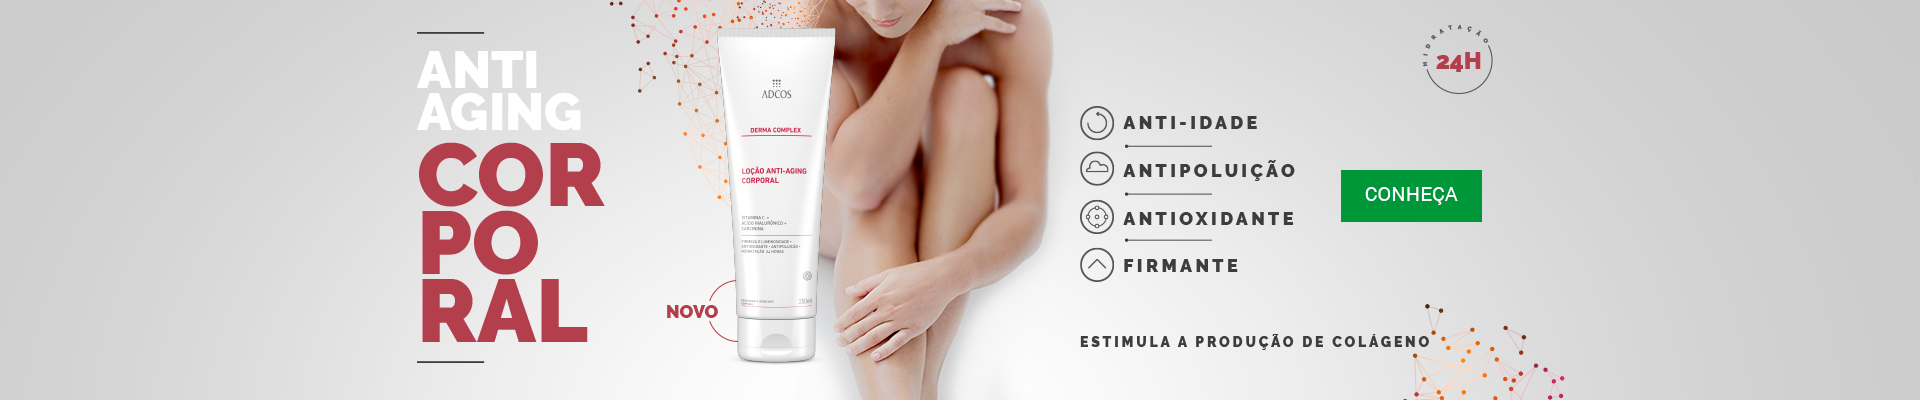 Antiaging Corporal